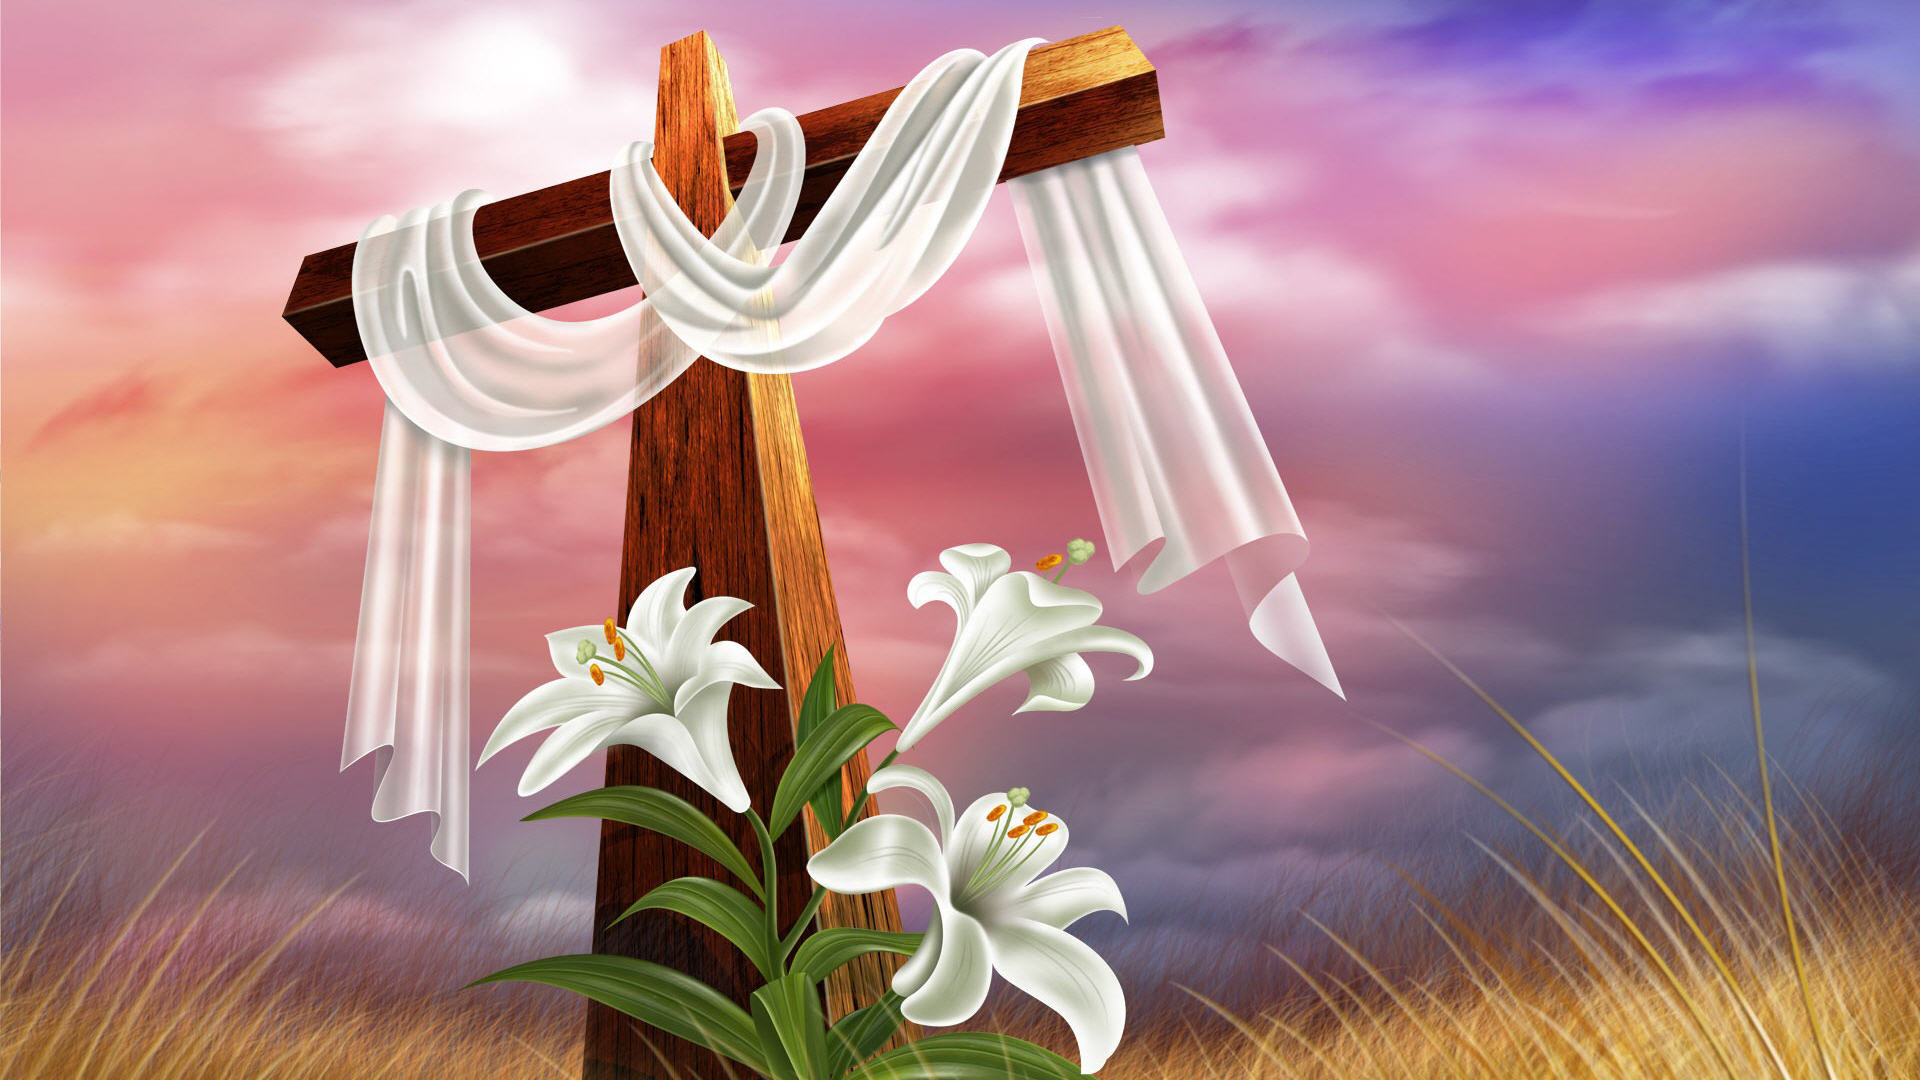 Happy Easter Desktop Wallpaper HD (12)